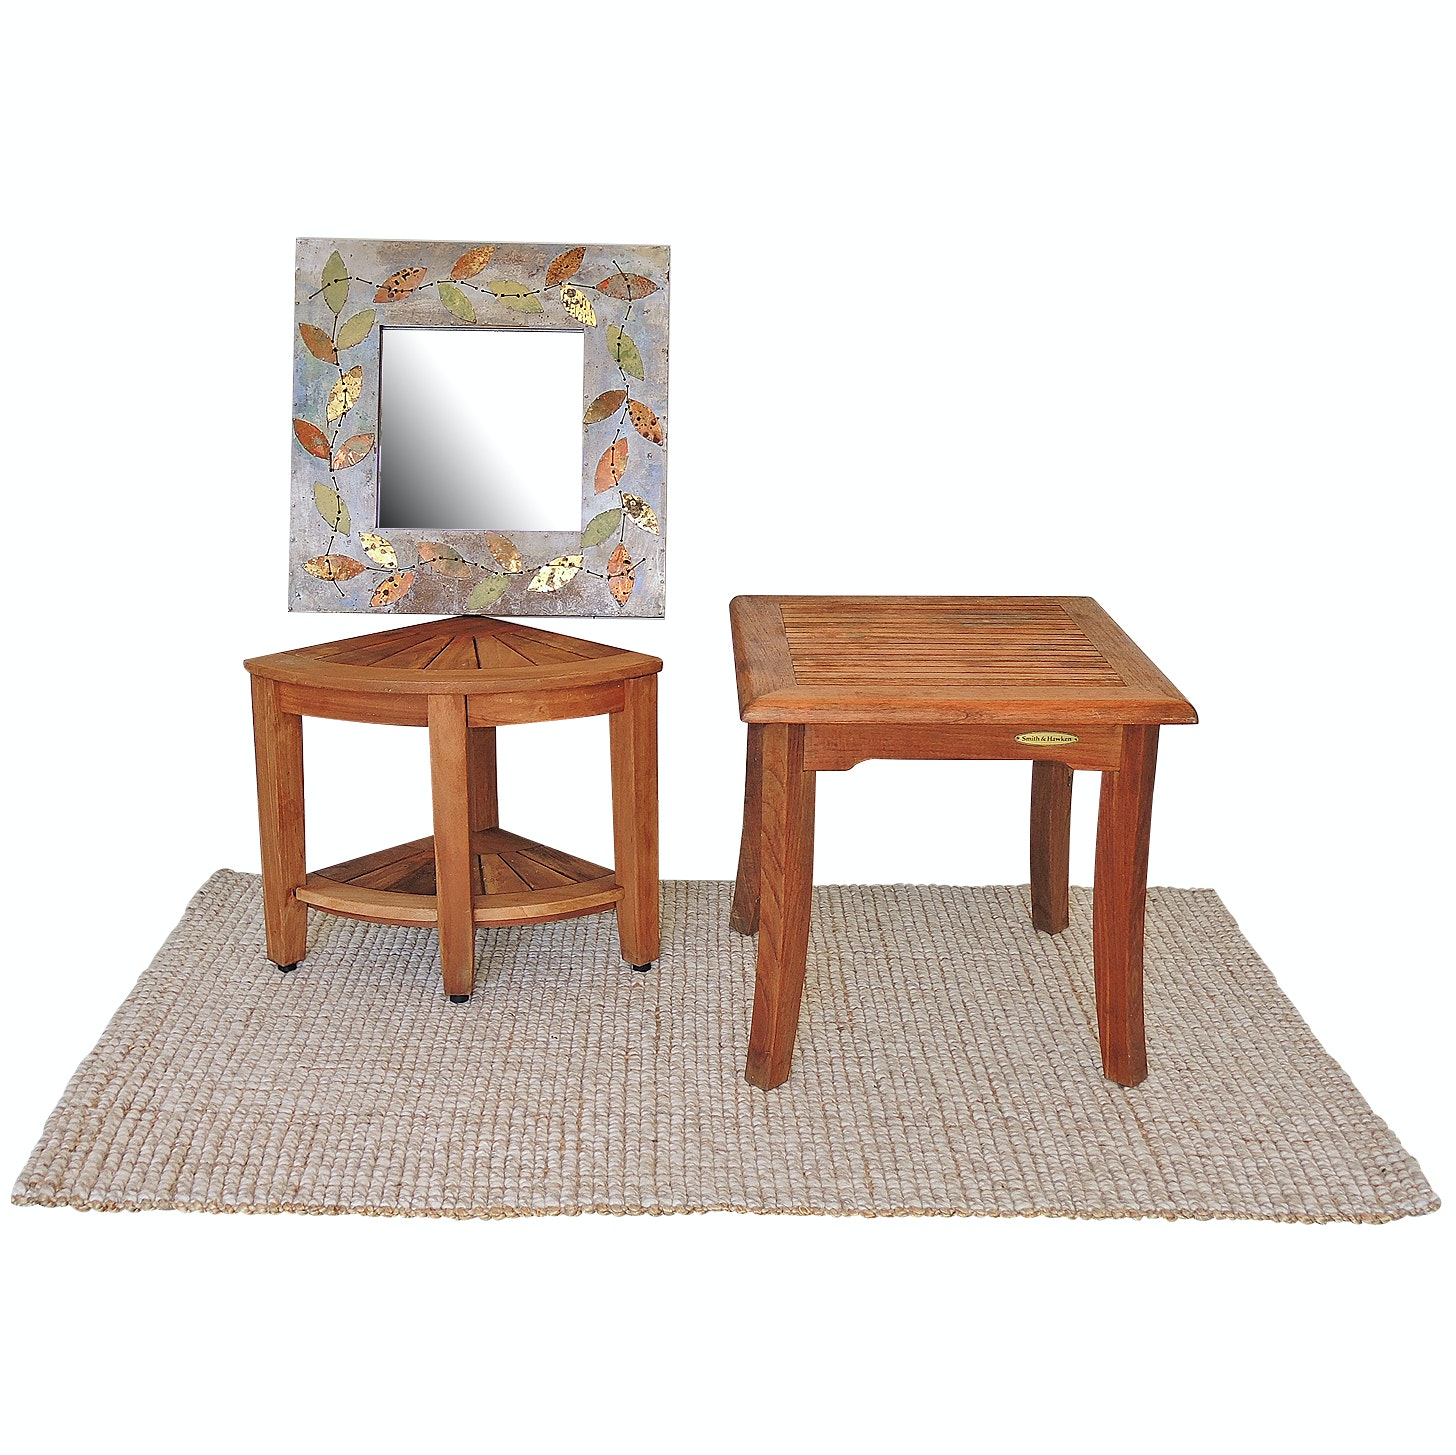 "Pottery Barn ""Chunky"" Rug with Smith and Hawken Stool and Metalwork Mirror"